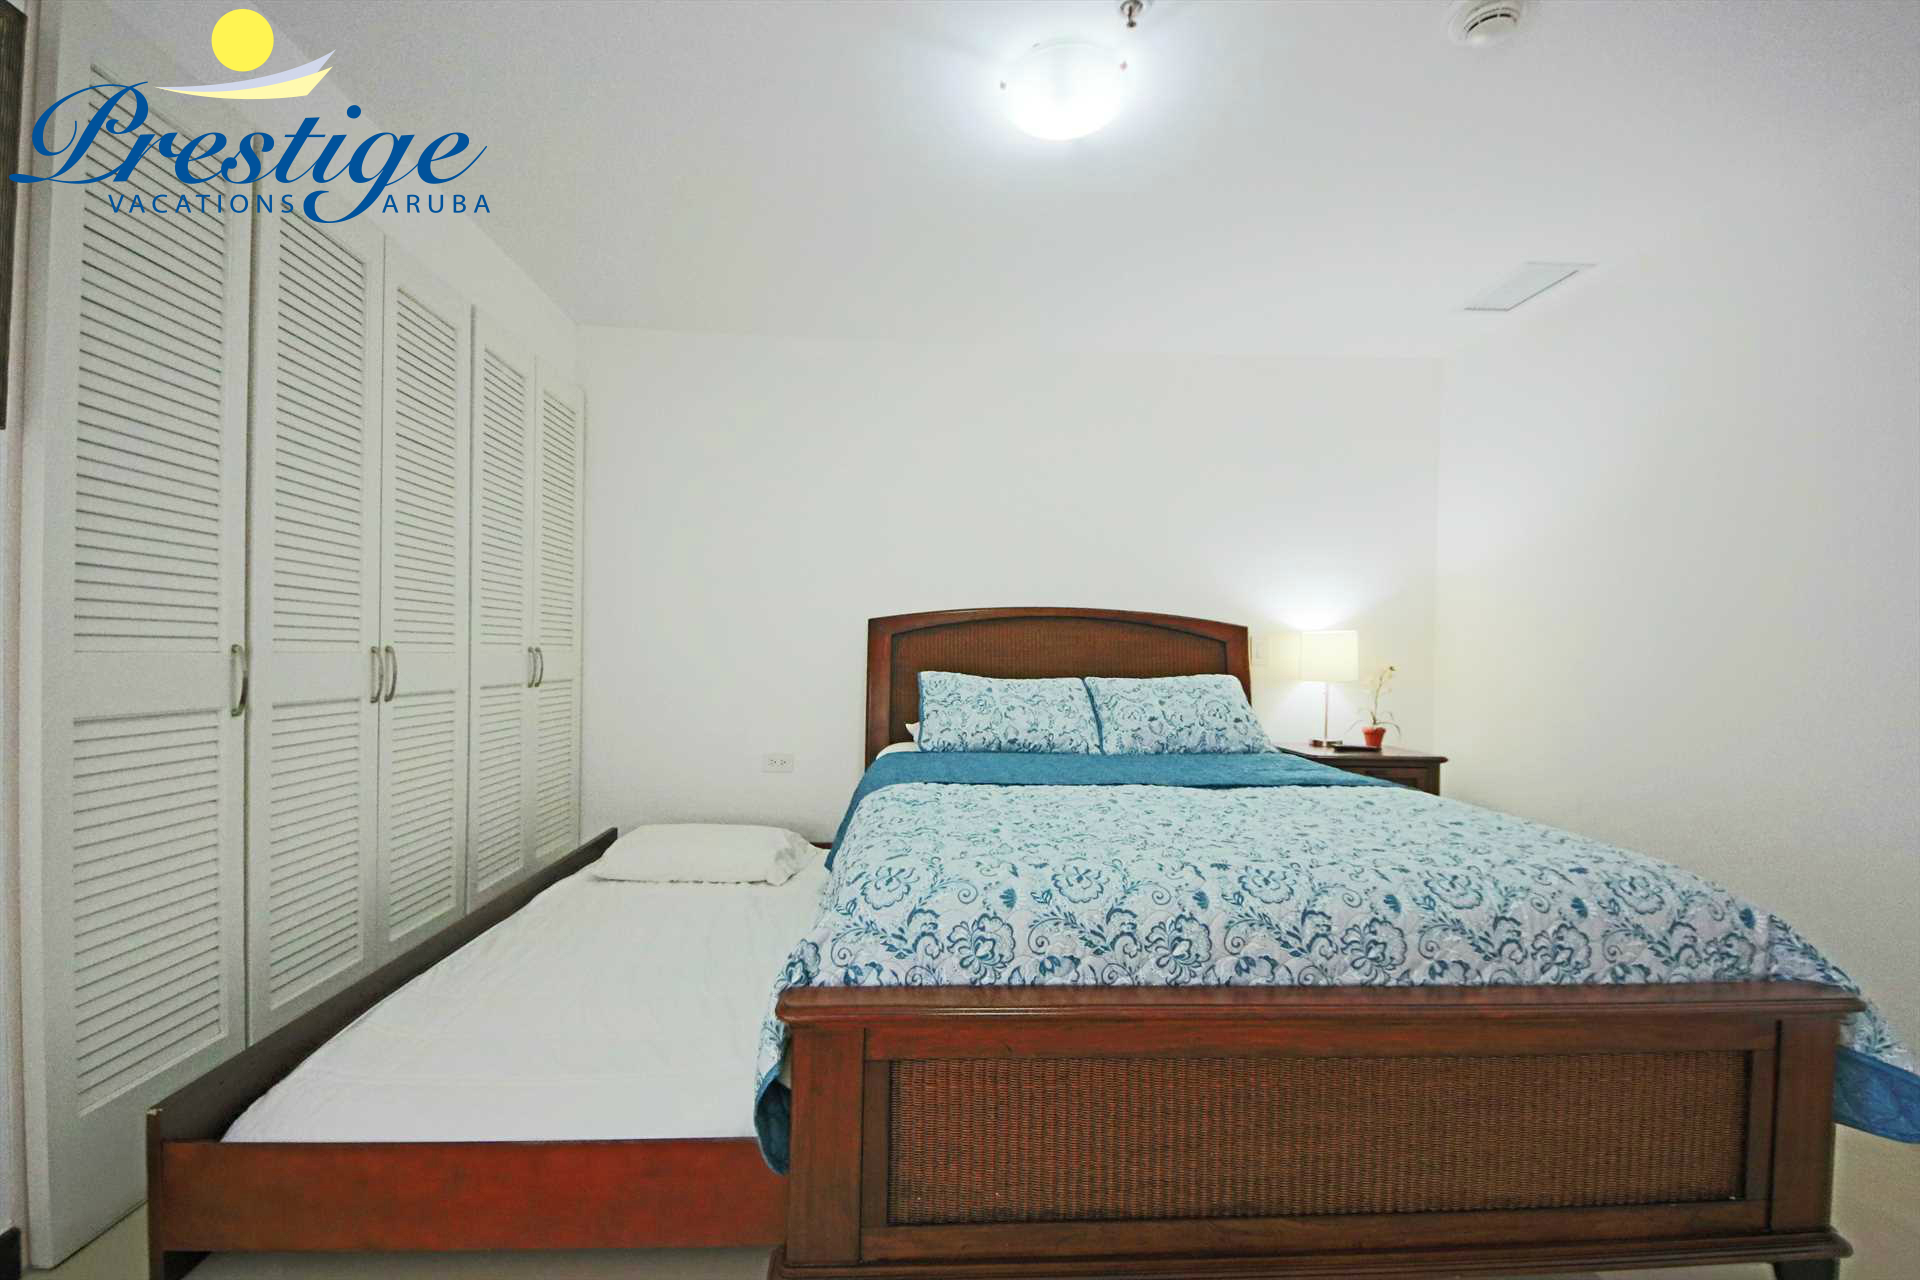 The second bedroom has a queen-size bed plus additionally a twin-size trundle bed